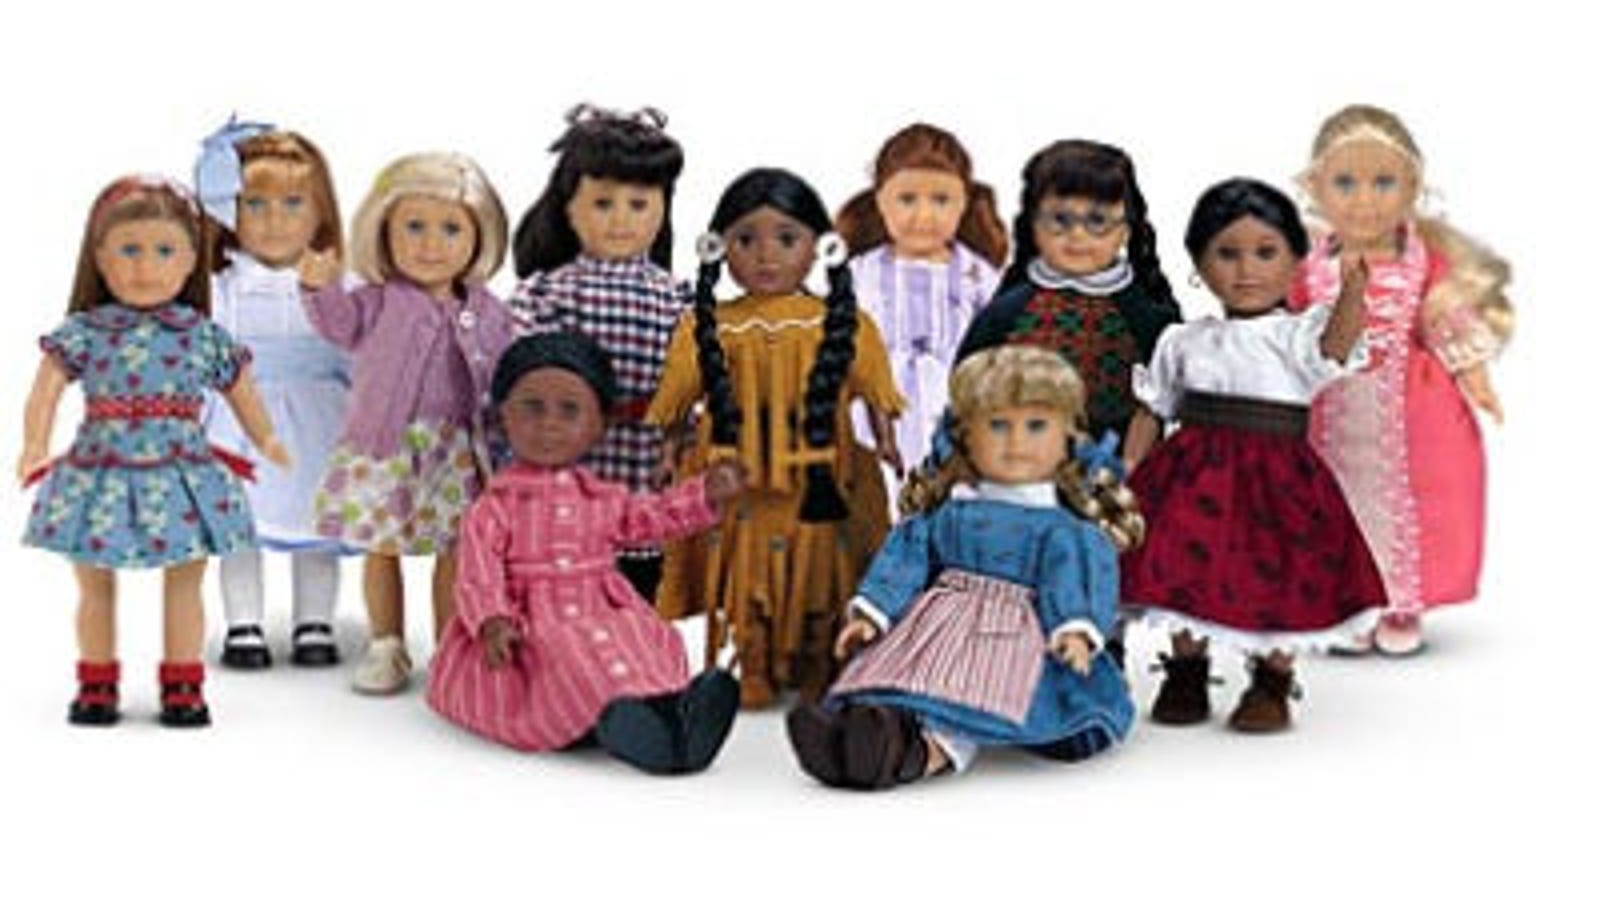 b87164d10a31b 3 Races of Dolls Required at All Day Care Centers?